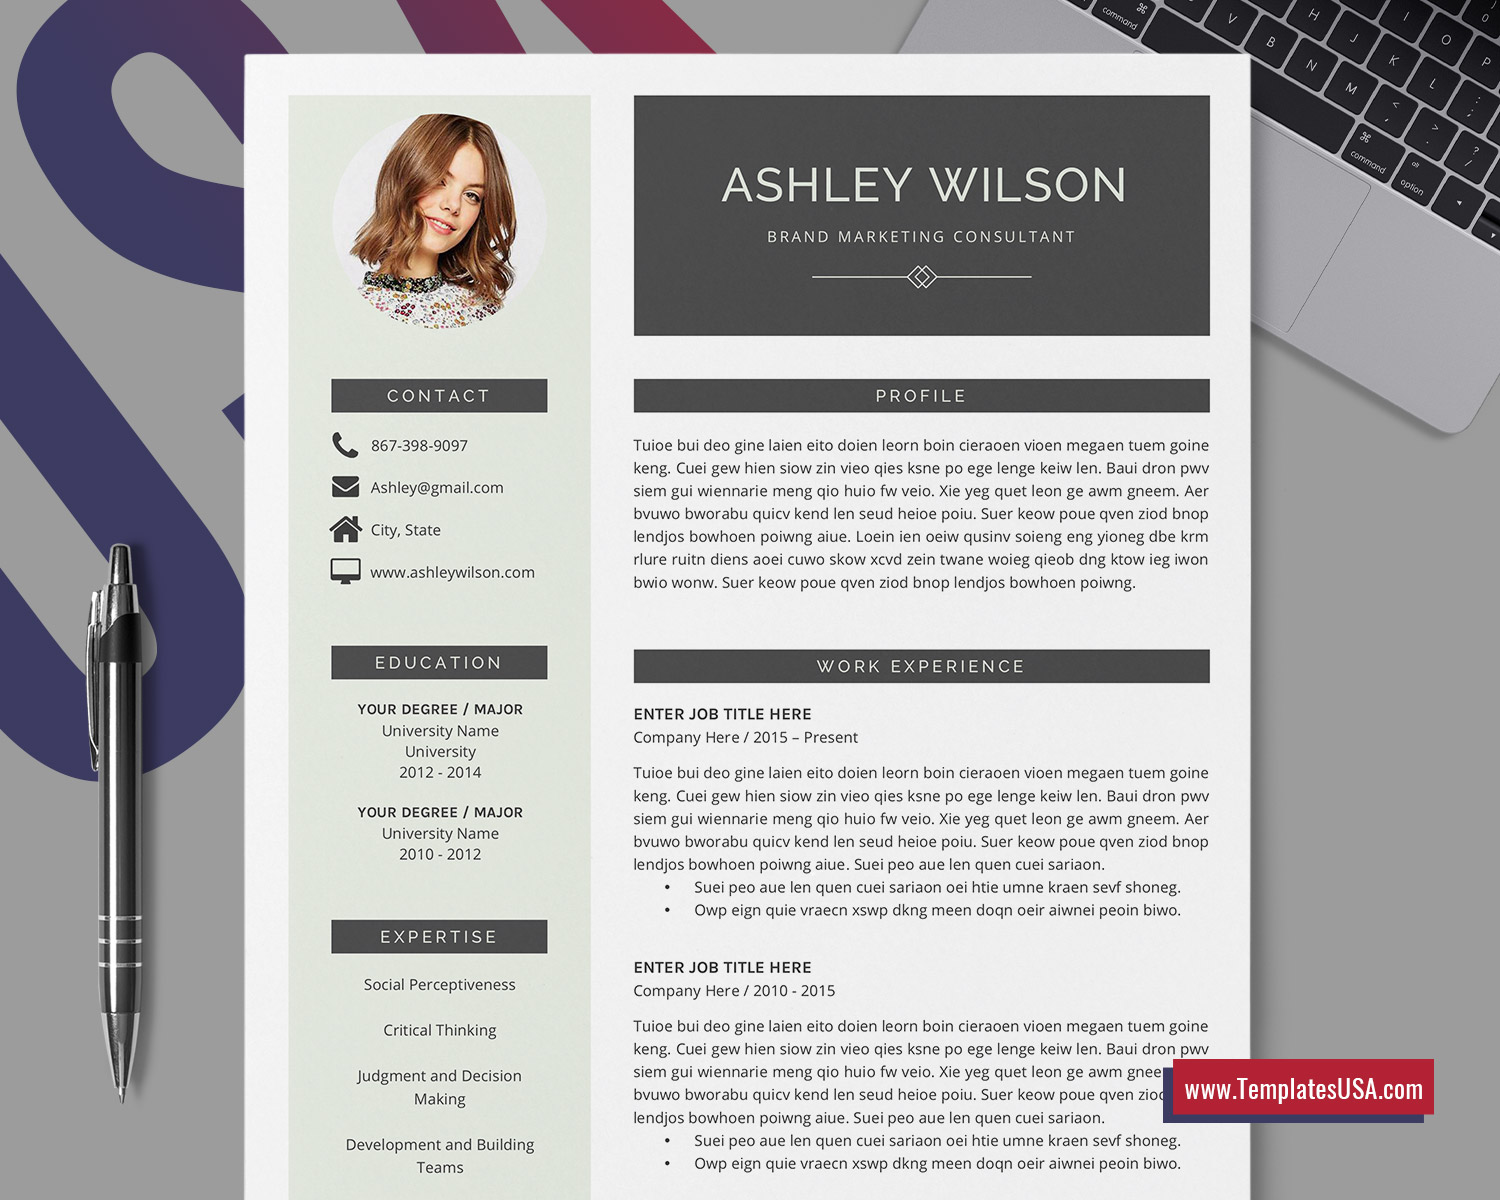 Templatesusa Com Best Selling Digital Resume Templates For